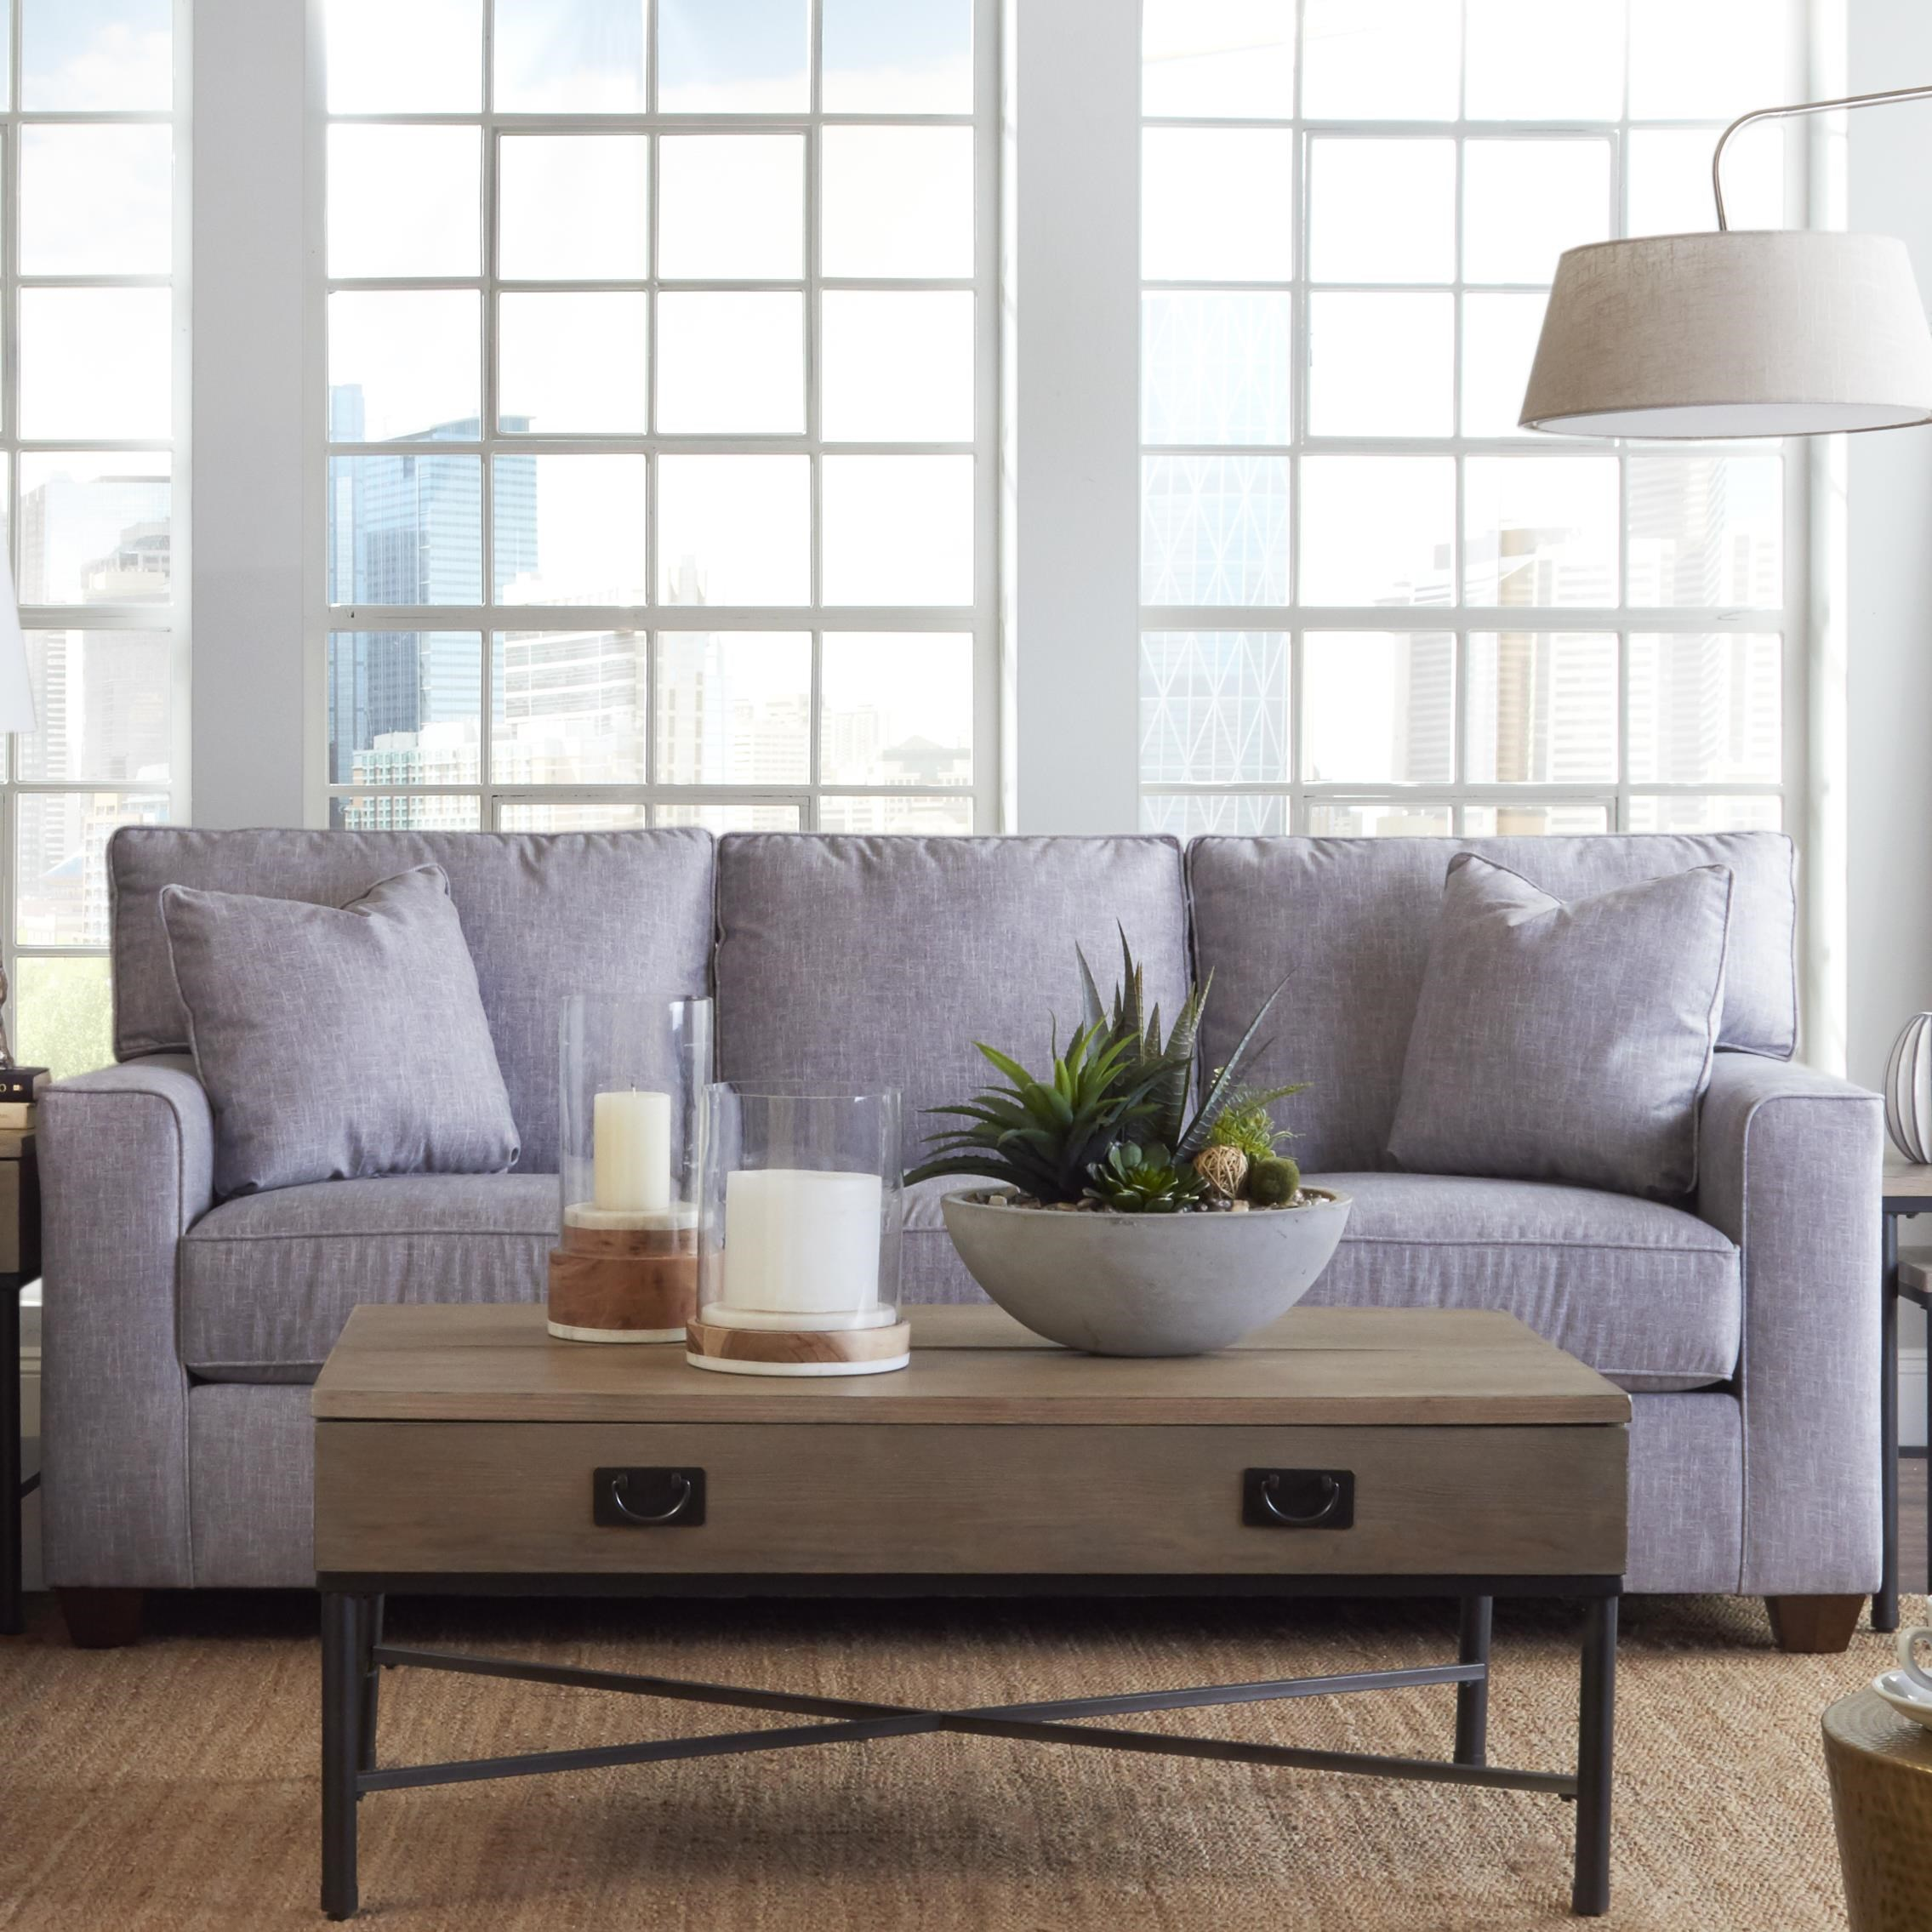 Queen Enso Memory Foam Sleeper Sofa